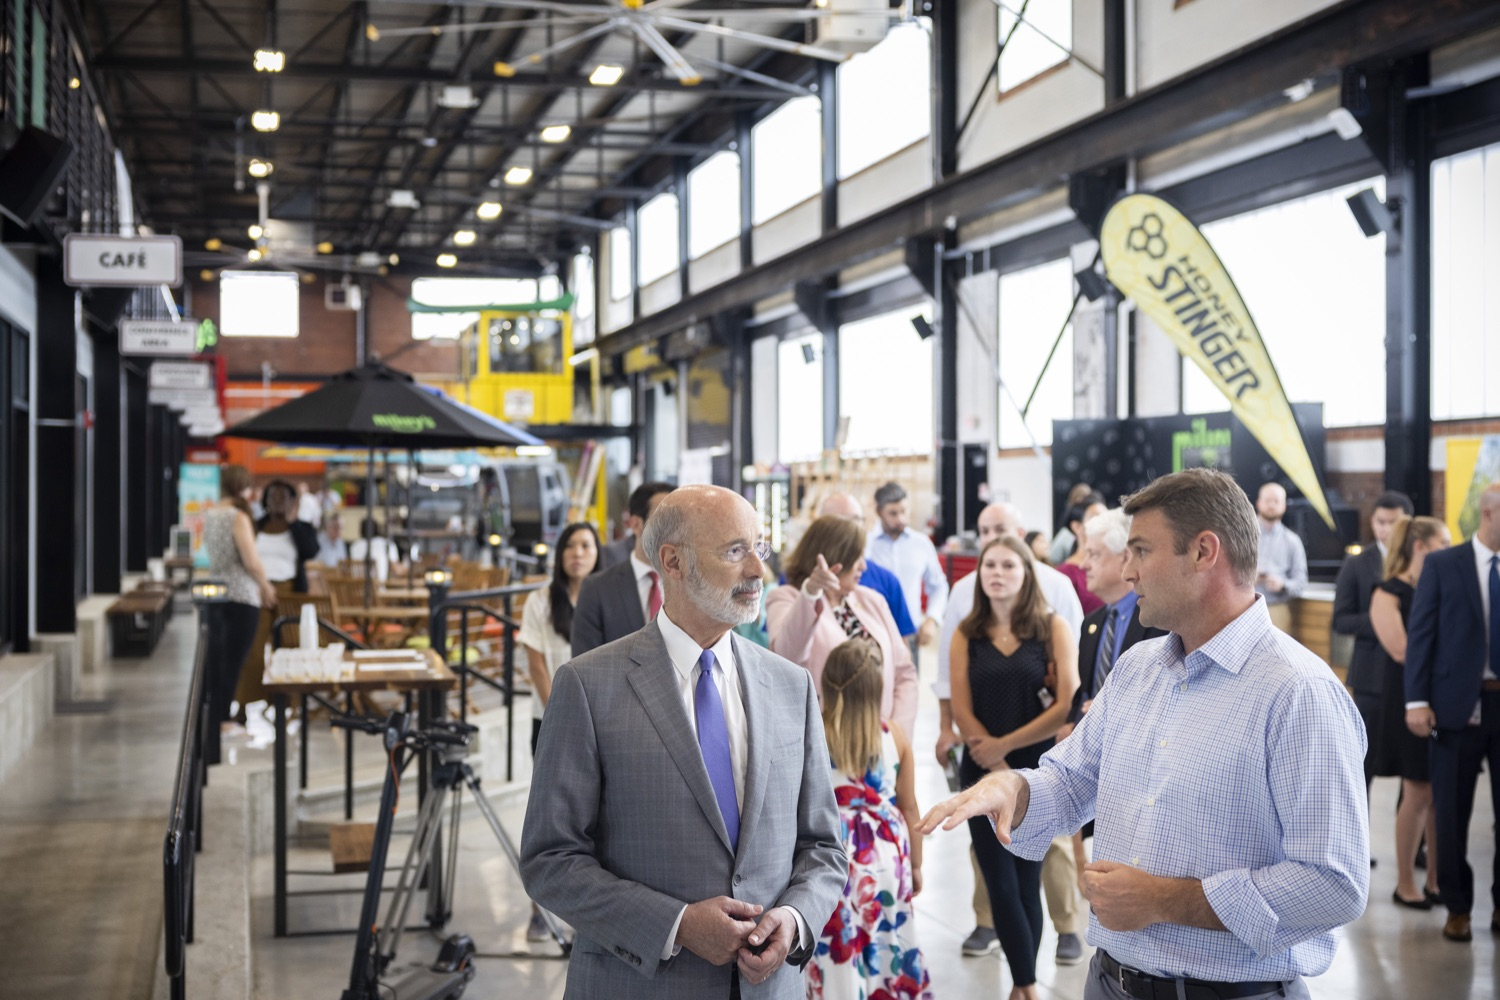 """<a href=""""https://filesource.wostreaming.net/commonwealthofpa/photo/18941_gov_economicDevelopment_dz_002.jpg"""" target=""""_blank"""">⇣Download Photo<br></a>Keith Caldwell, Partner  Factory LLC giving Pennsylvania Governor Tom Wolf a tour of Factory LLC.  Governor Tom Wolf today visited Factory LLC in Bethlehem to tour the facility and highlight the importance of investing in Pennsylvanias start-up companies. During the visit, he met with companies affiliated with Factory, including Stuffed Puffs®, which received a $1 million funding proposal from the commonwealth in 2019 to expand its manufacturing operations and create jobs, Mikeys®, Pipcorn®, Honey Stinger®, and ROAR® Organic. Bethlehem, PA  July 19, 2021"""